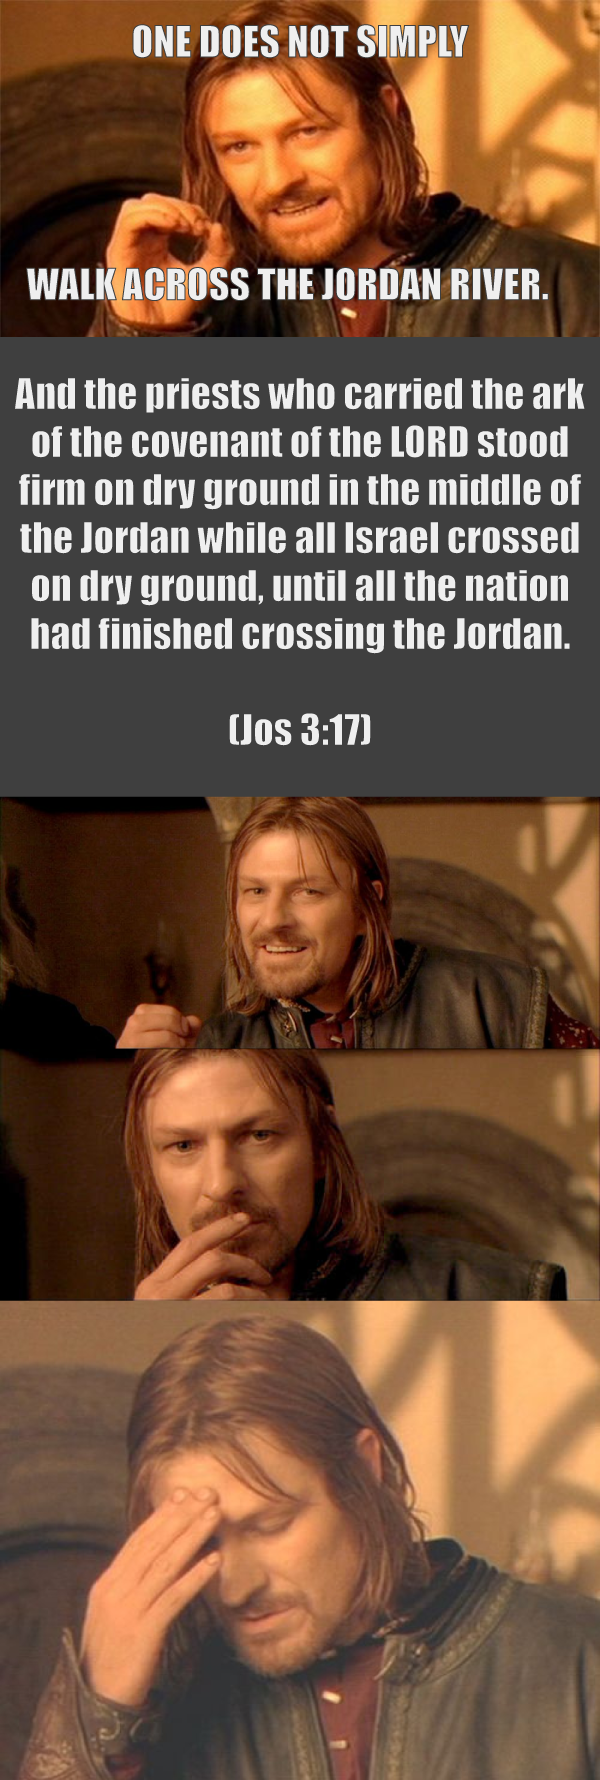 One does not simply cross the Jordan River on dry ground … right?